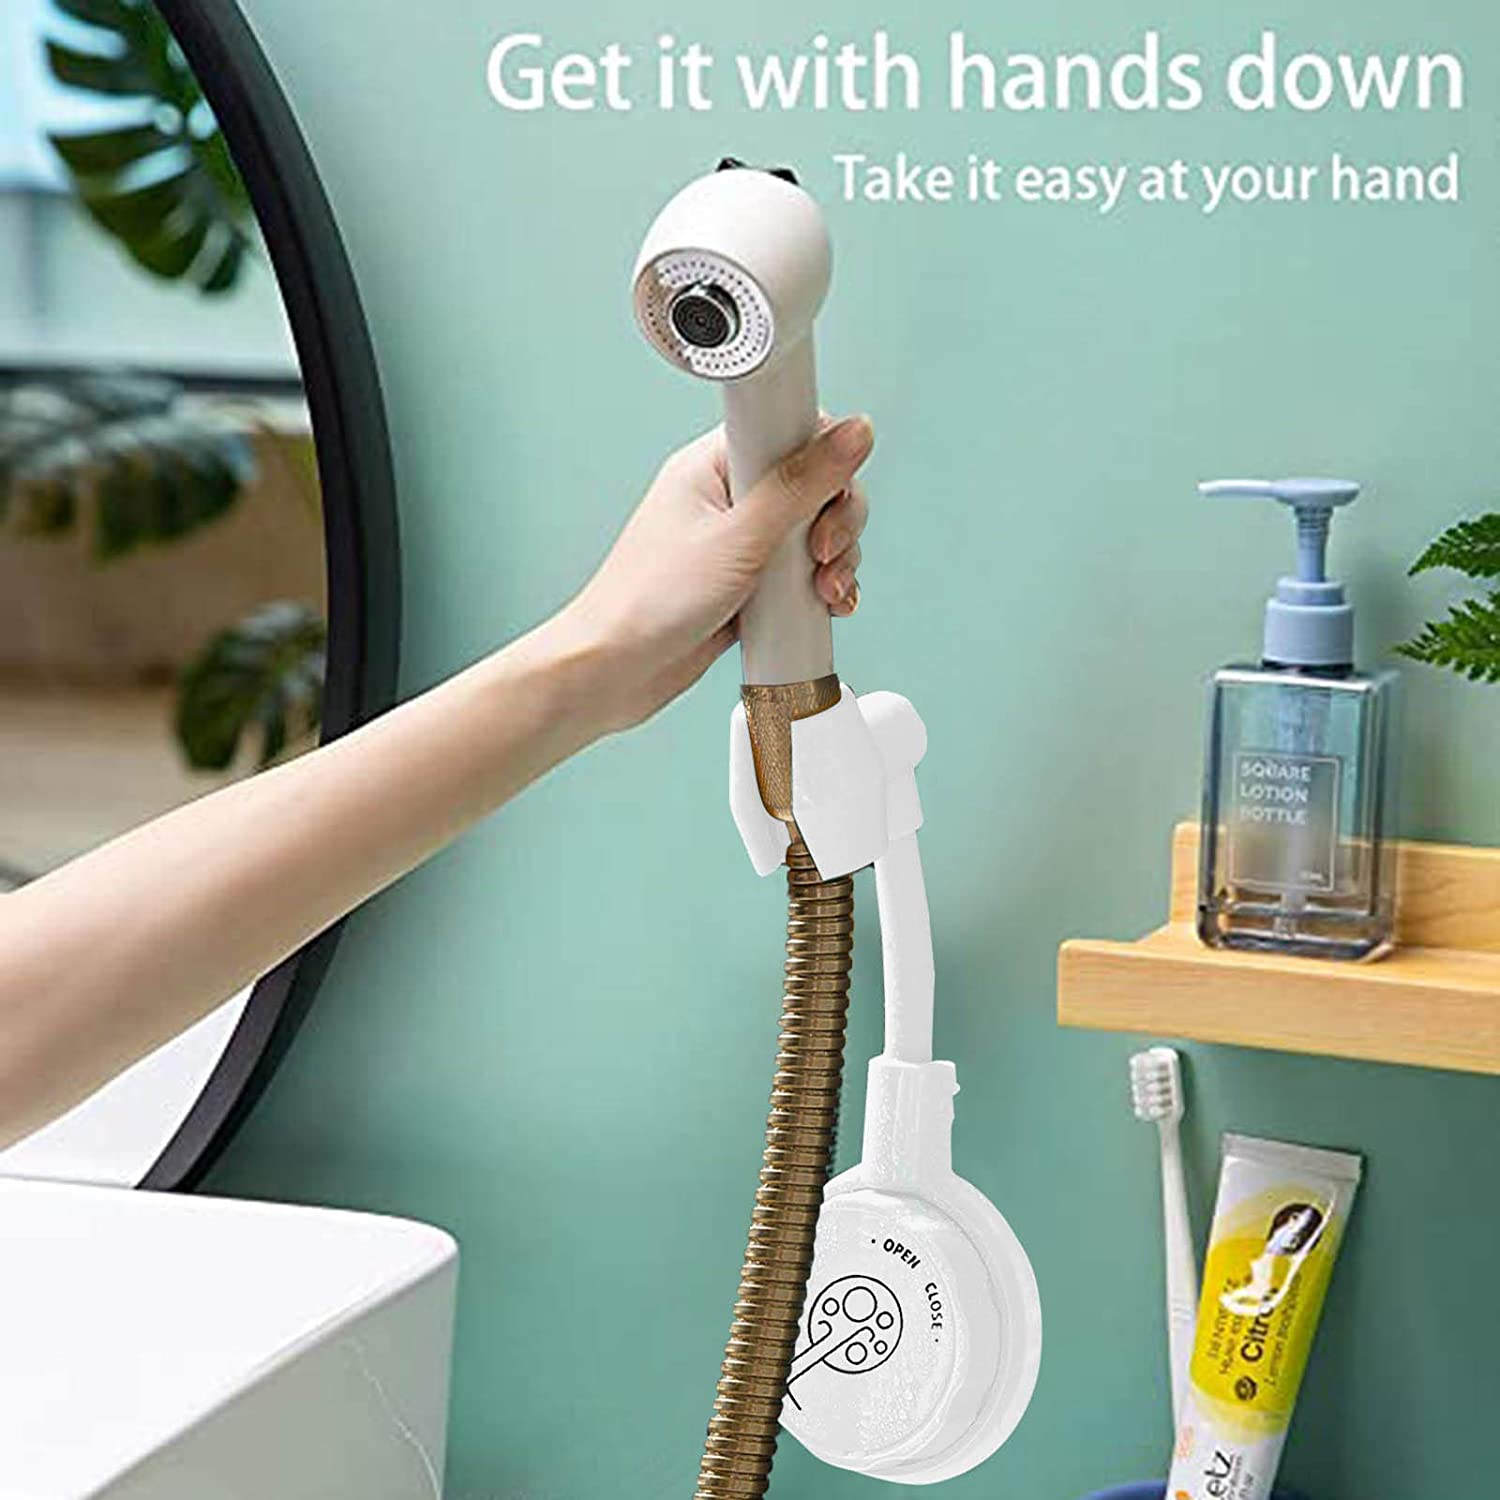 1PC, Black 2020 Newst Shower Head Holder No-Punching Vacuum Suction Shower Head Rack Easy to Install Suitable for Bathroom Kitchen Strong Adhesive 360/° Adjustable Rotatable Shower Head Bracket